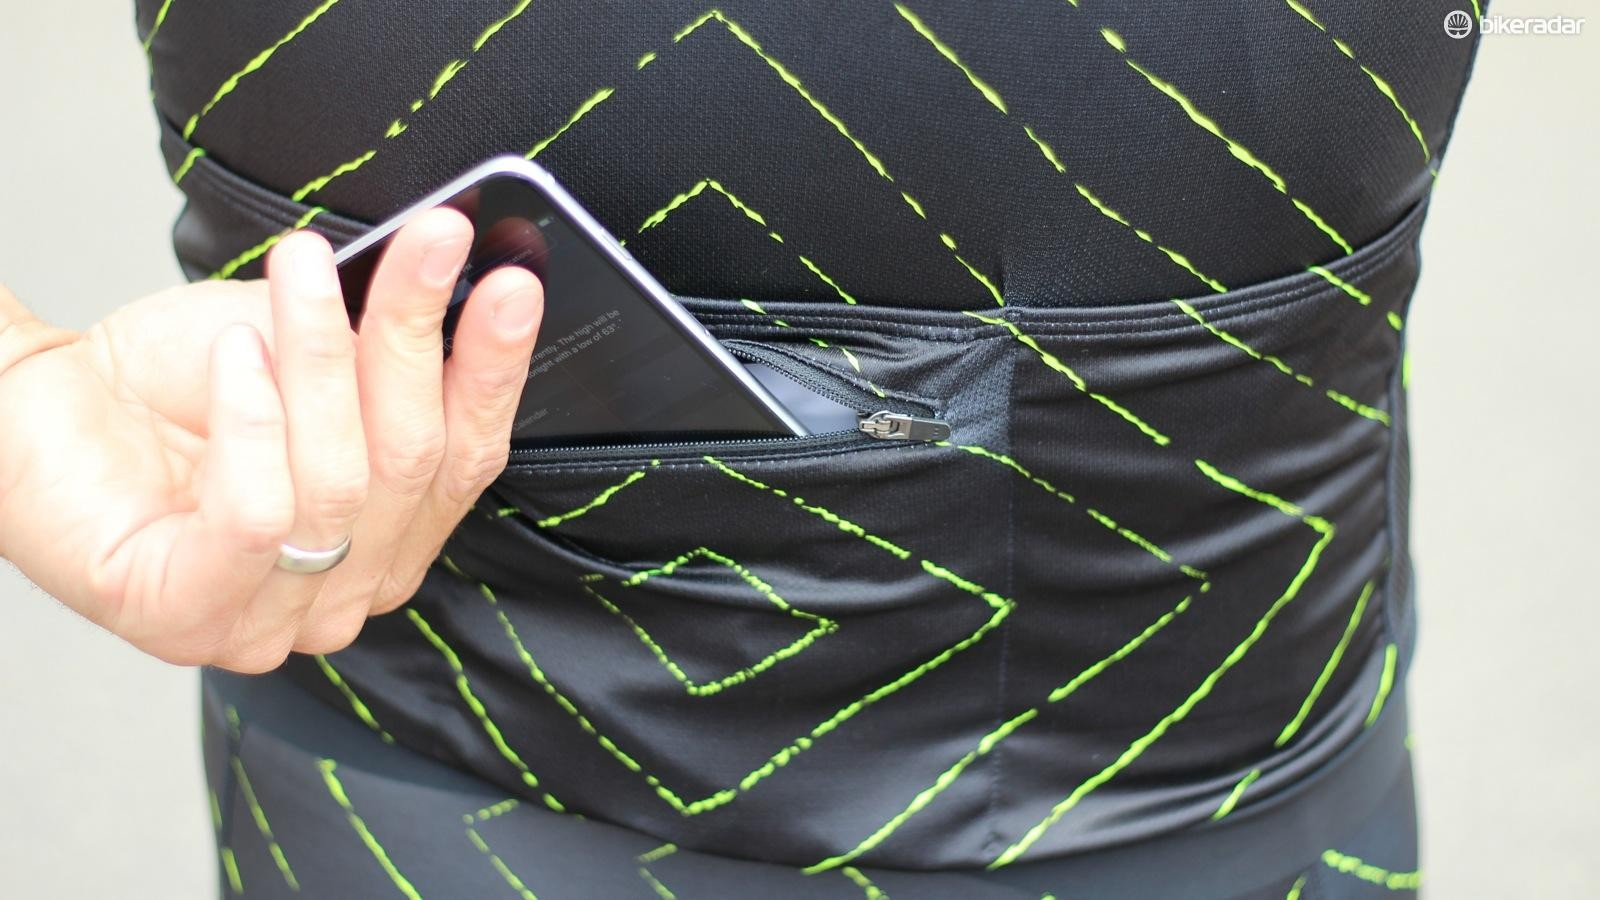 The main selling point on the Edge jersey is the waterproof phone pocket